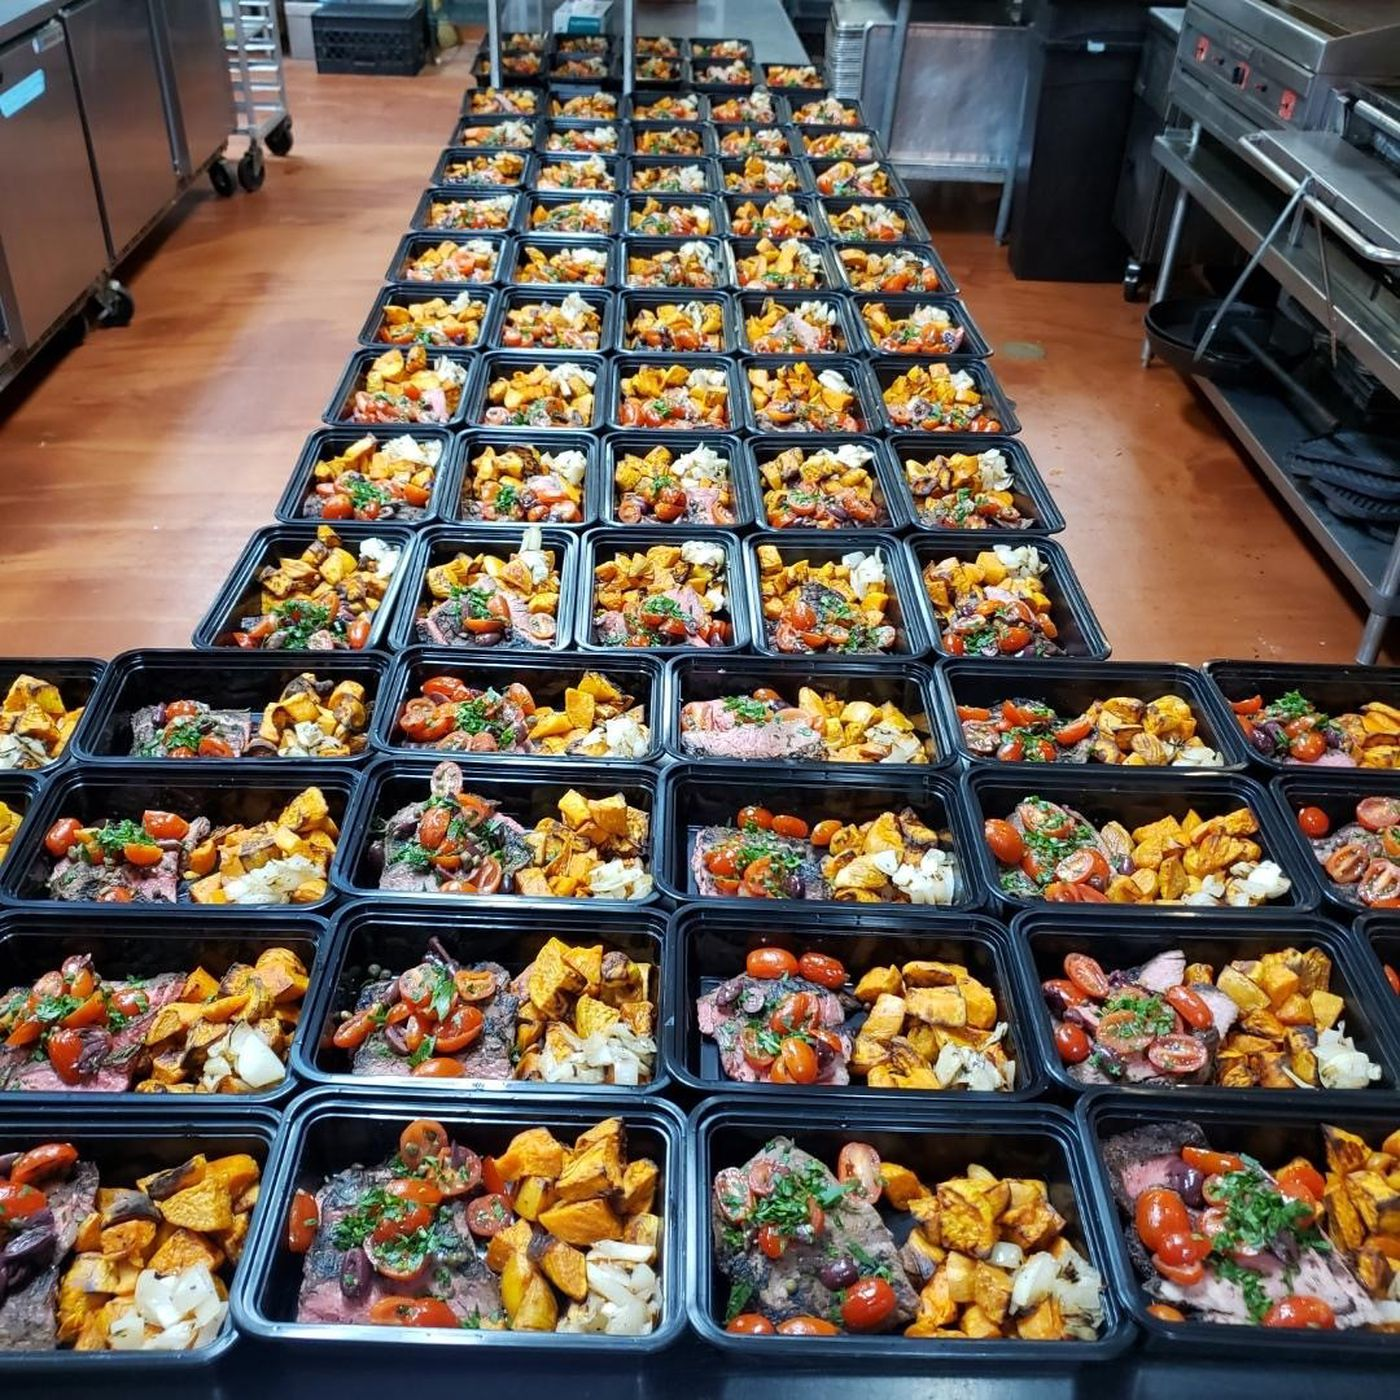 Nyc Food Delivery And Coronavirus Catering Companies Pivot To Bulk Meals And Provisions Eater Ny